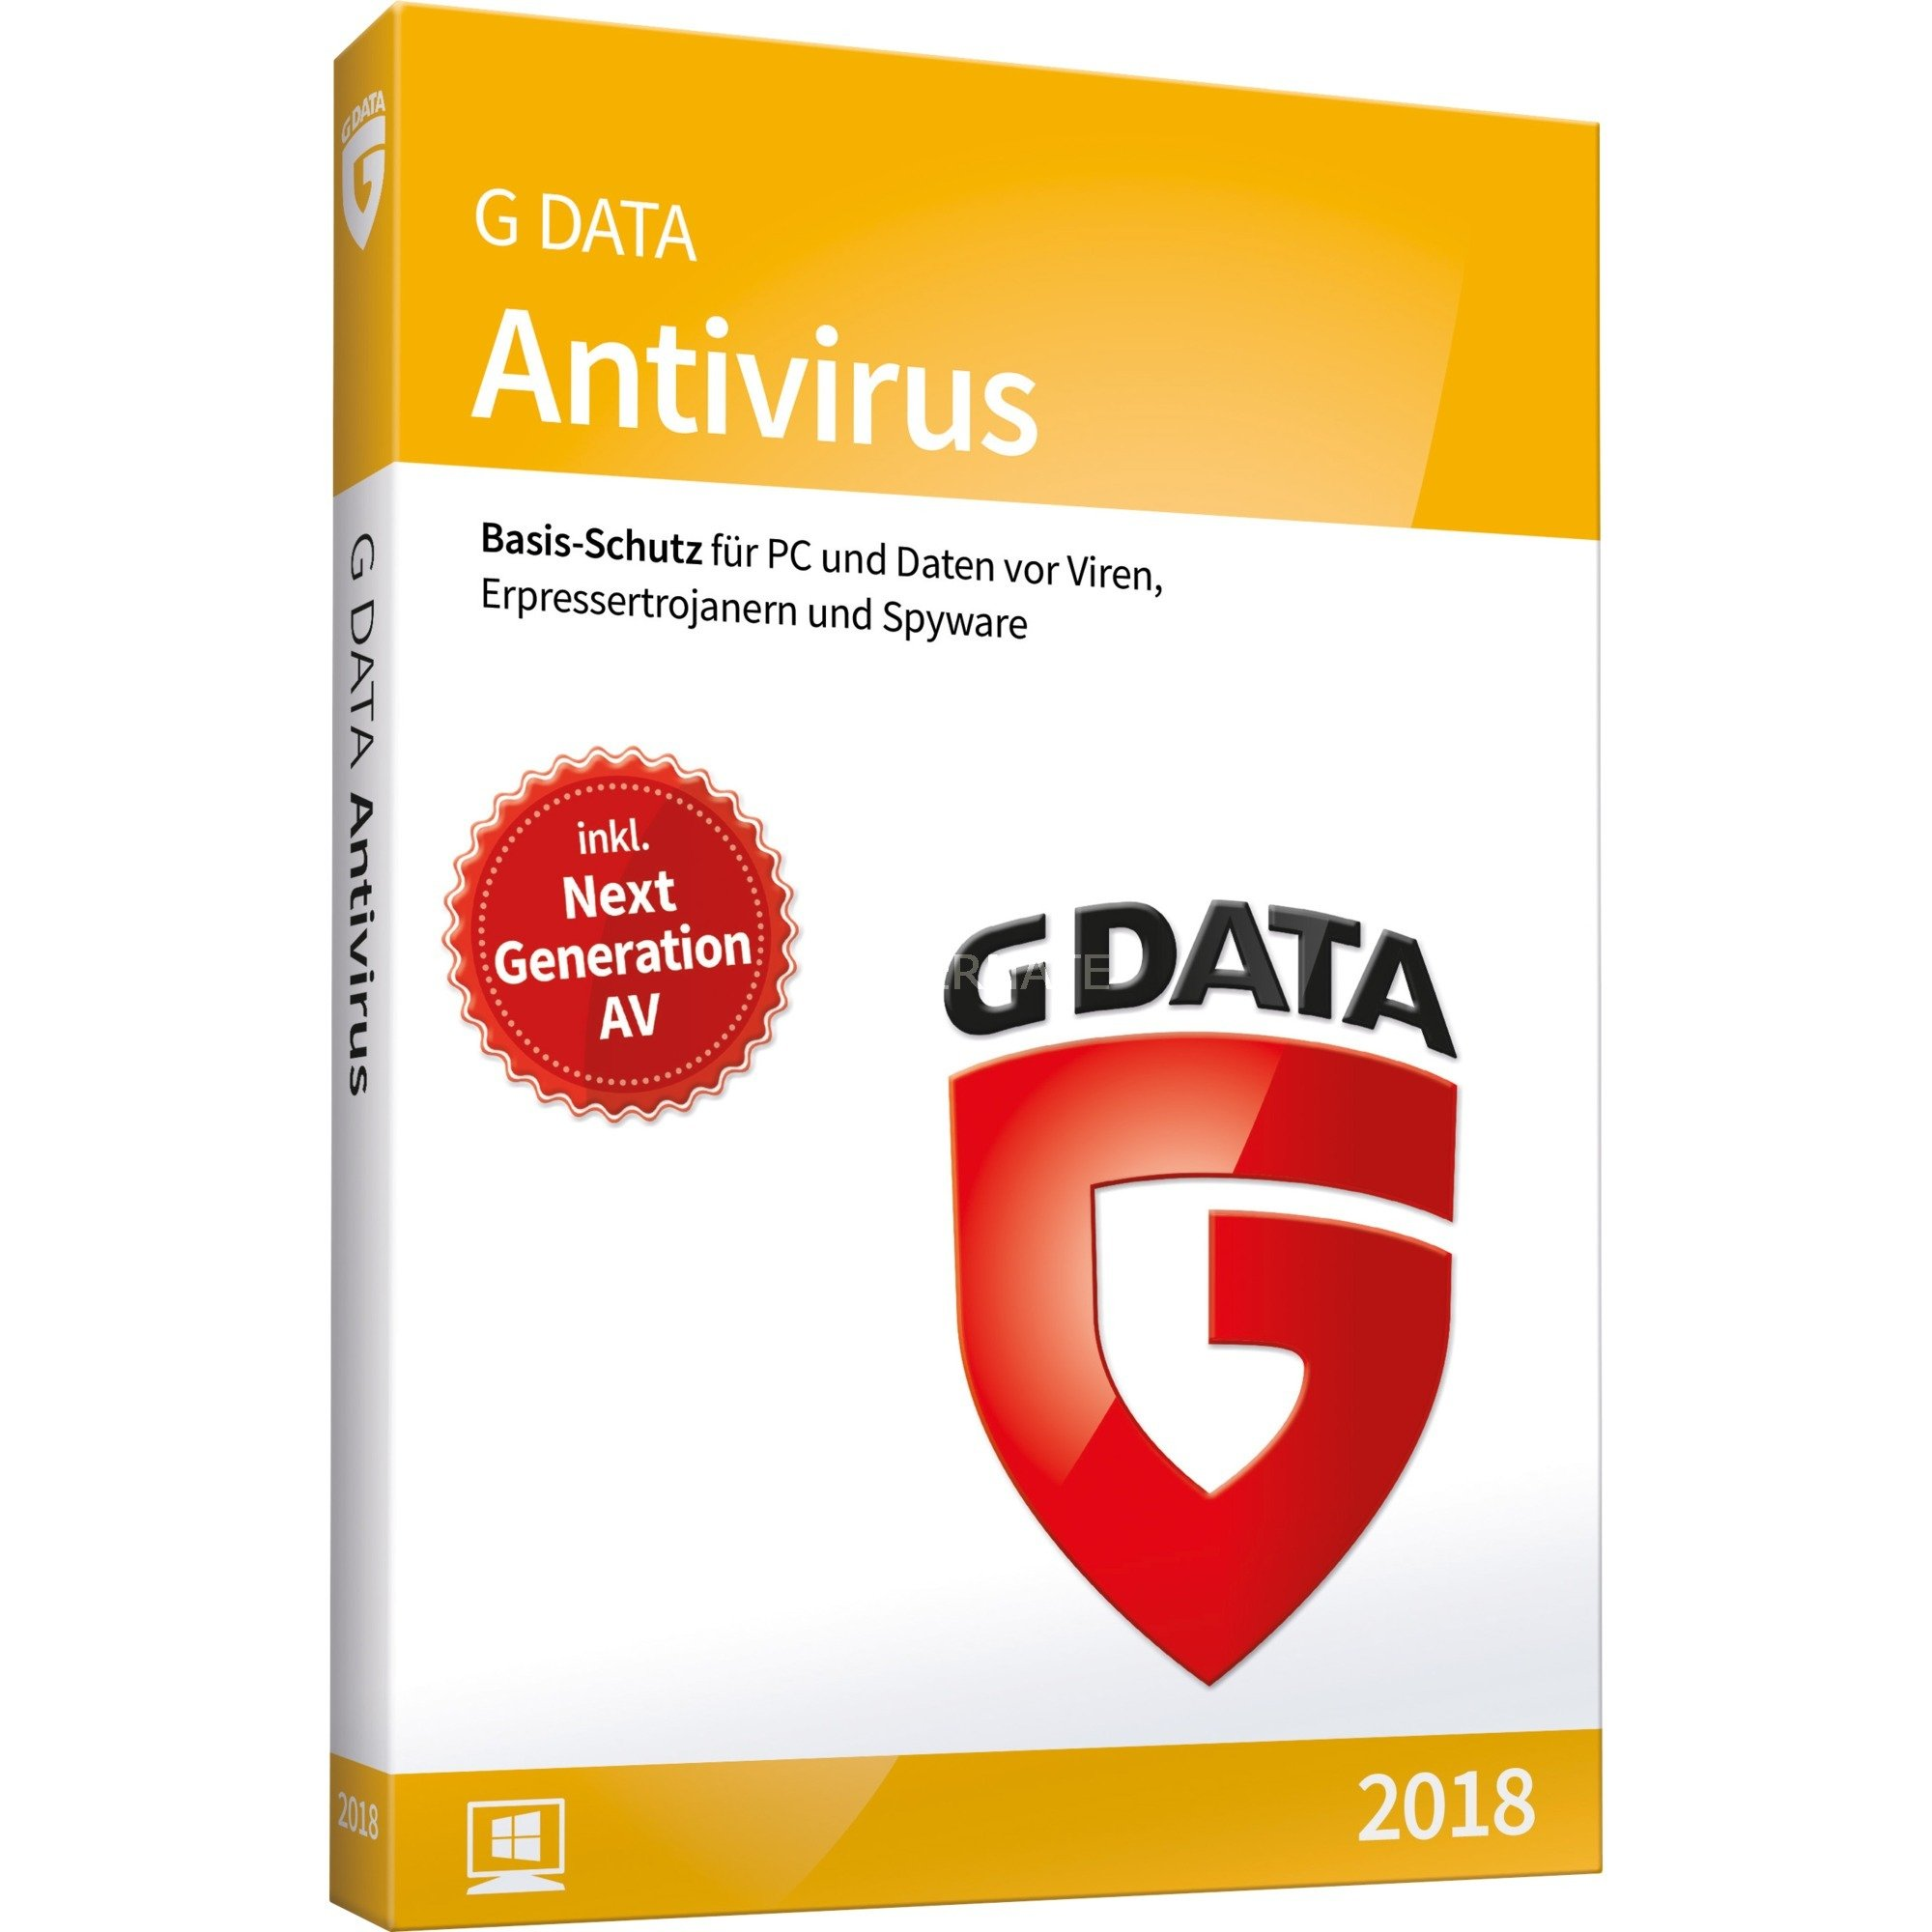 Antivirus 2018, Software